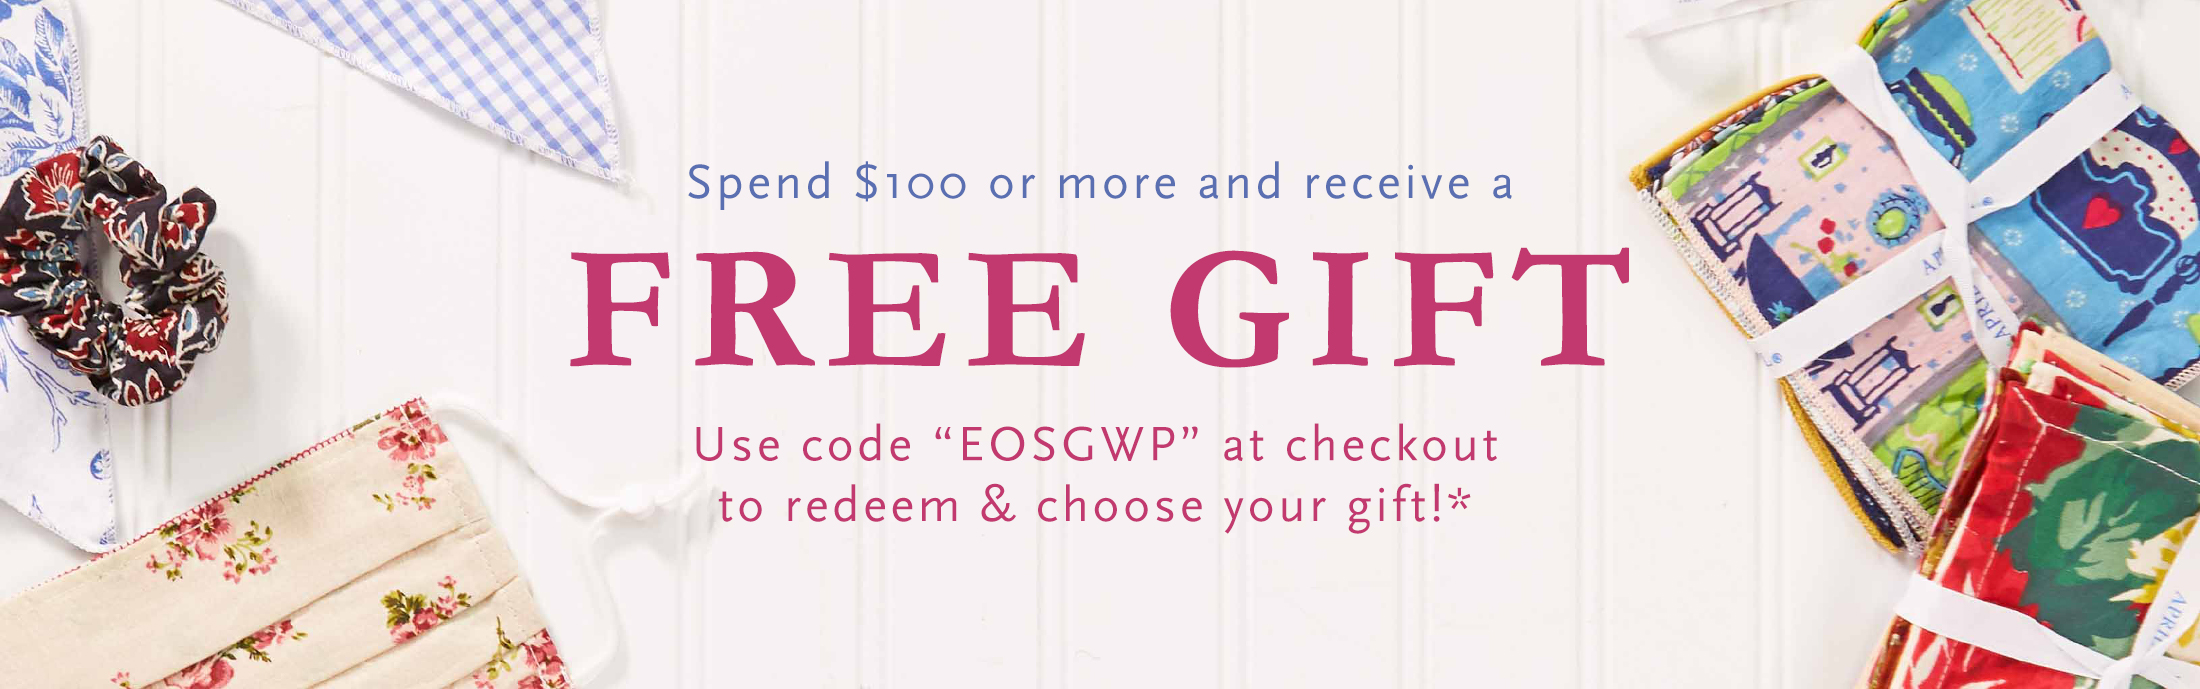 Spend $100 or more and qualify for a free gift with purchase.